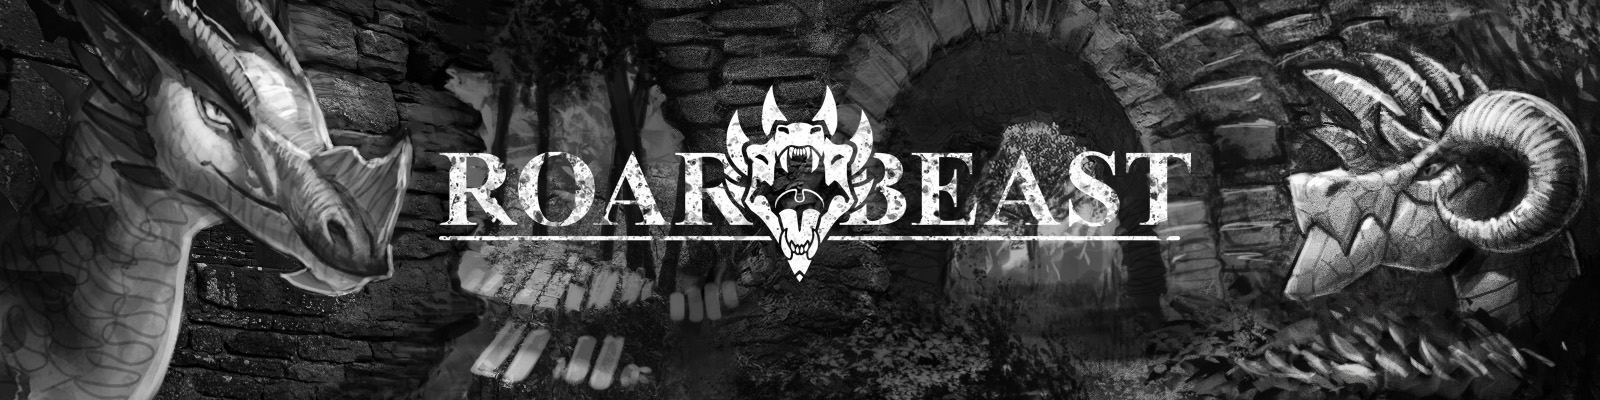 Roarbeast Website